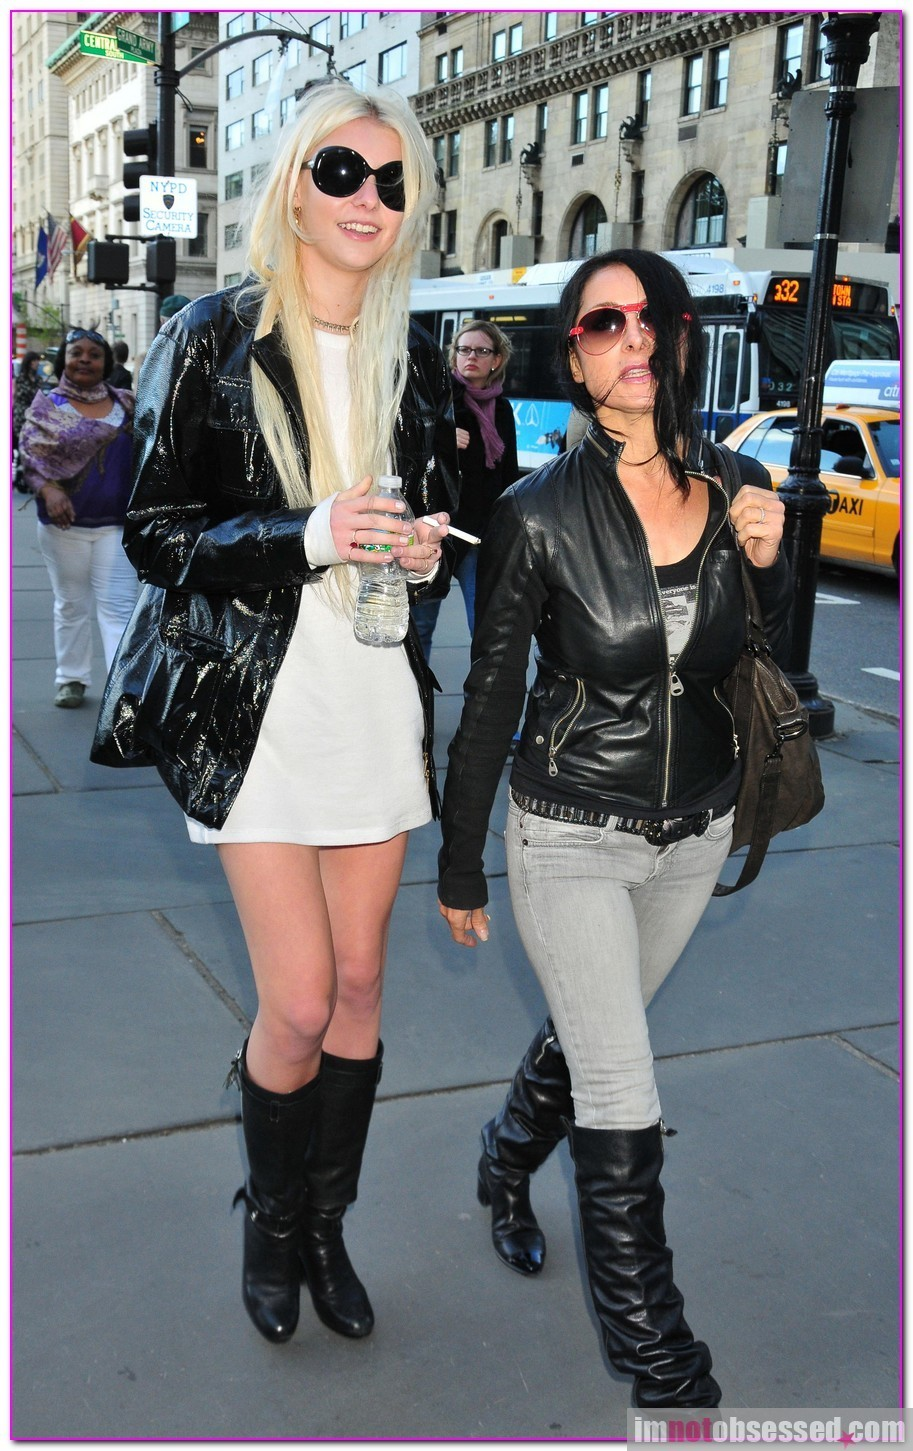 Taylor Momsen, 17, of The Pretty Reckless crossing the rua in NYC